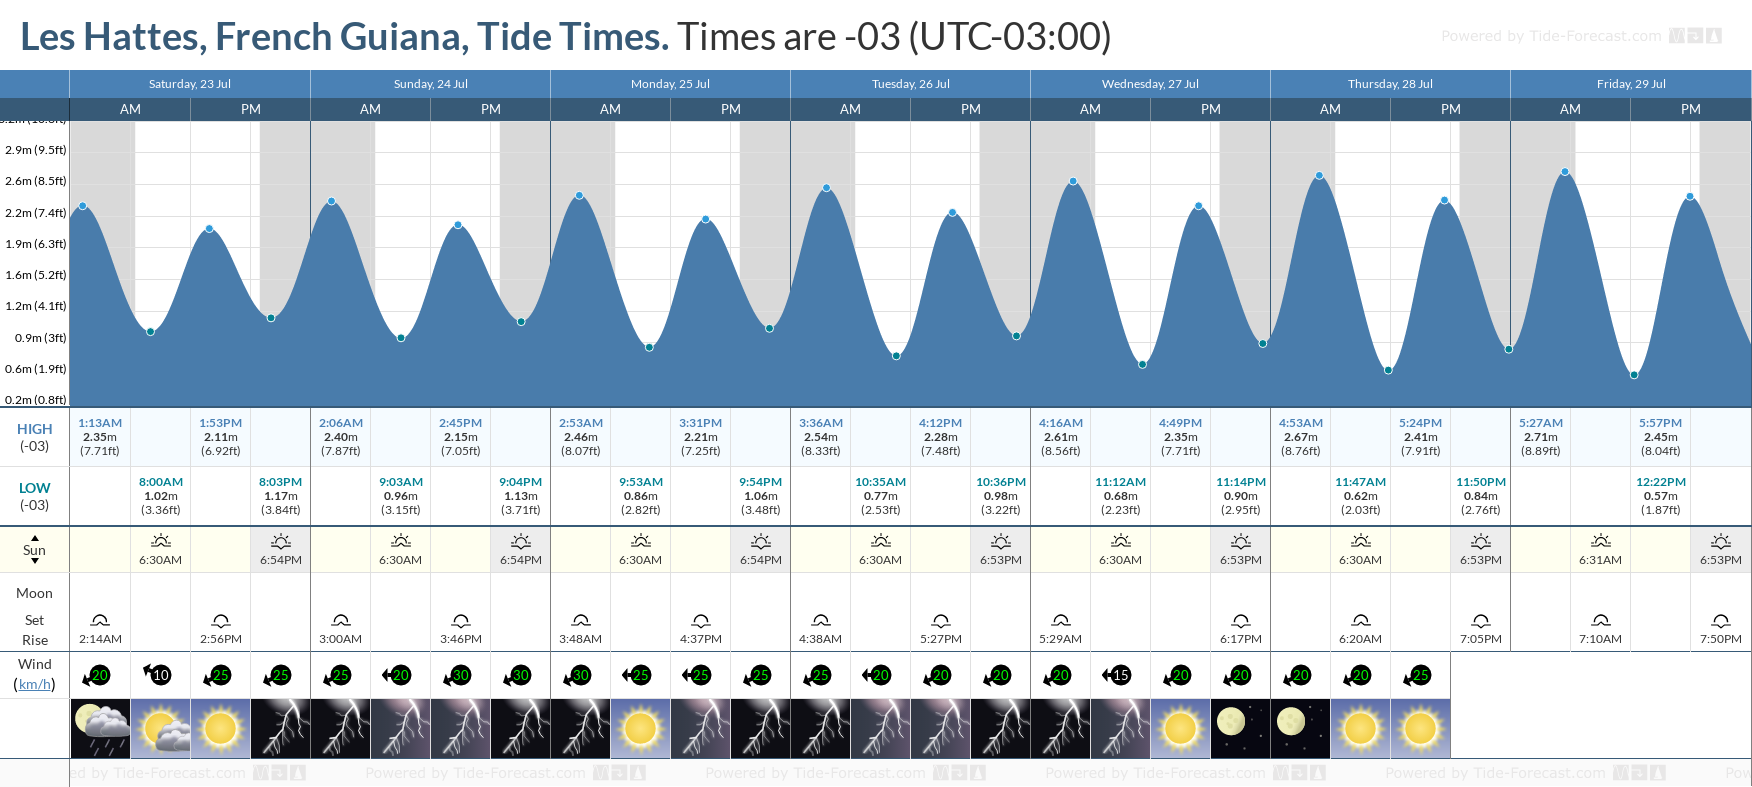 Les Hattes, French Guiana Tide Chart including high and low tide tide times for the next 7 days